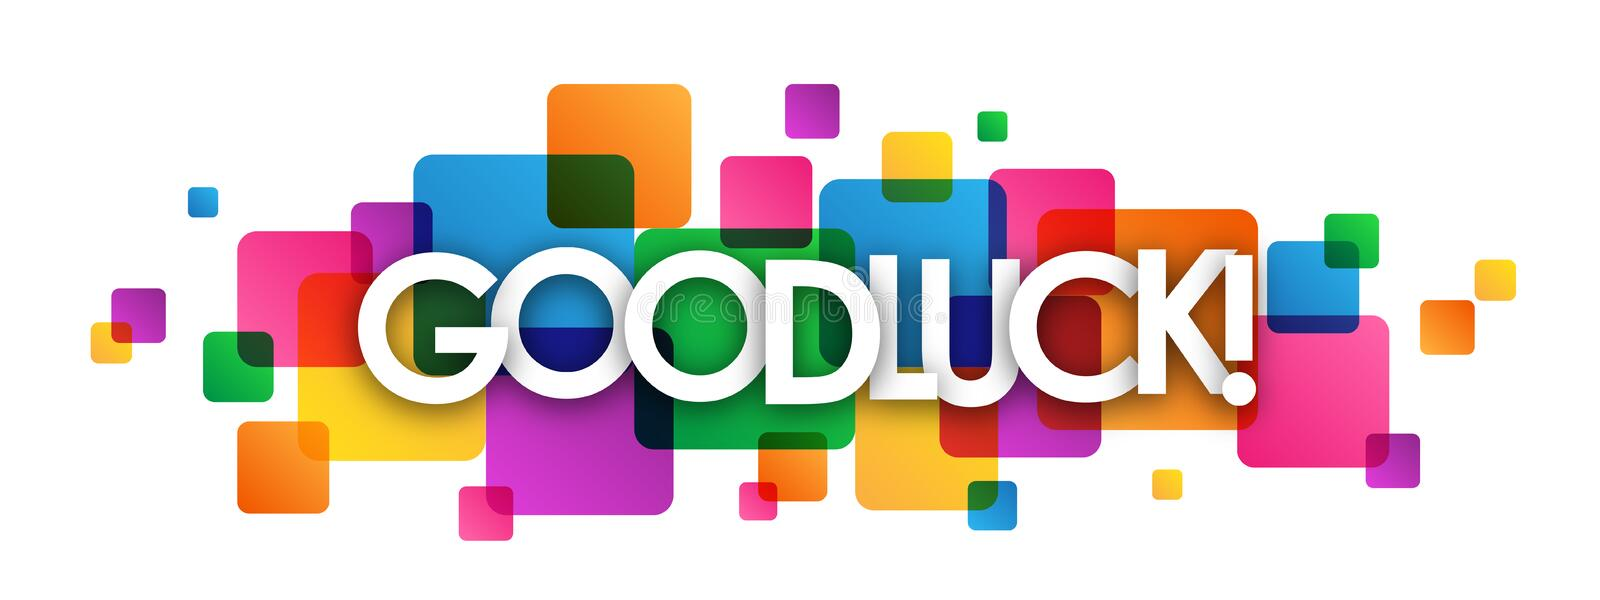 GOOD LUCK! colorful overlapping squares banner vector illustration